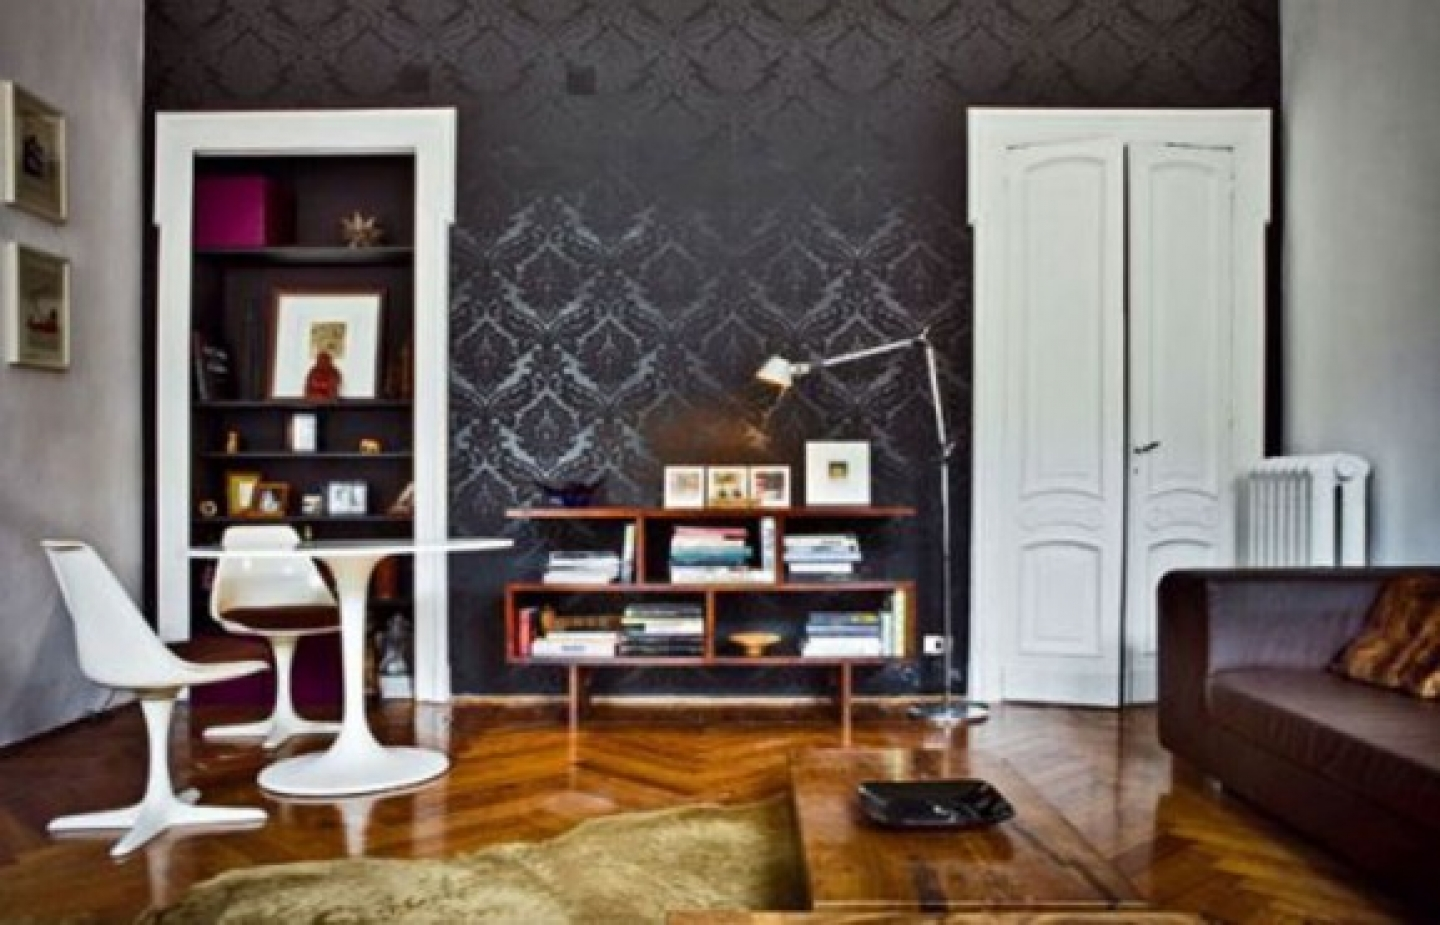 50 Wallpaper Decorating Ideas Living Room On Wallpapersafari